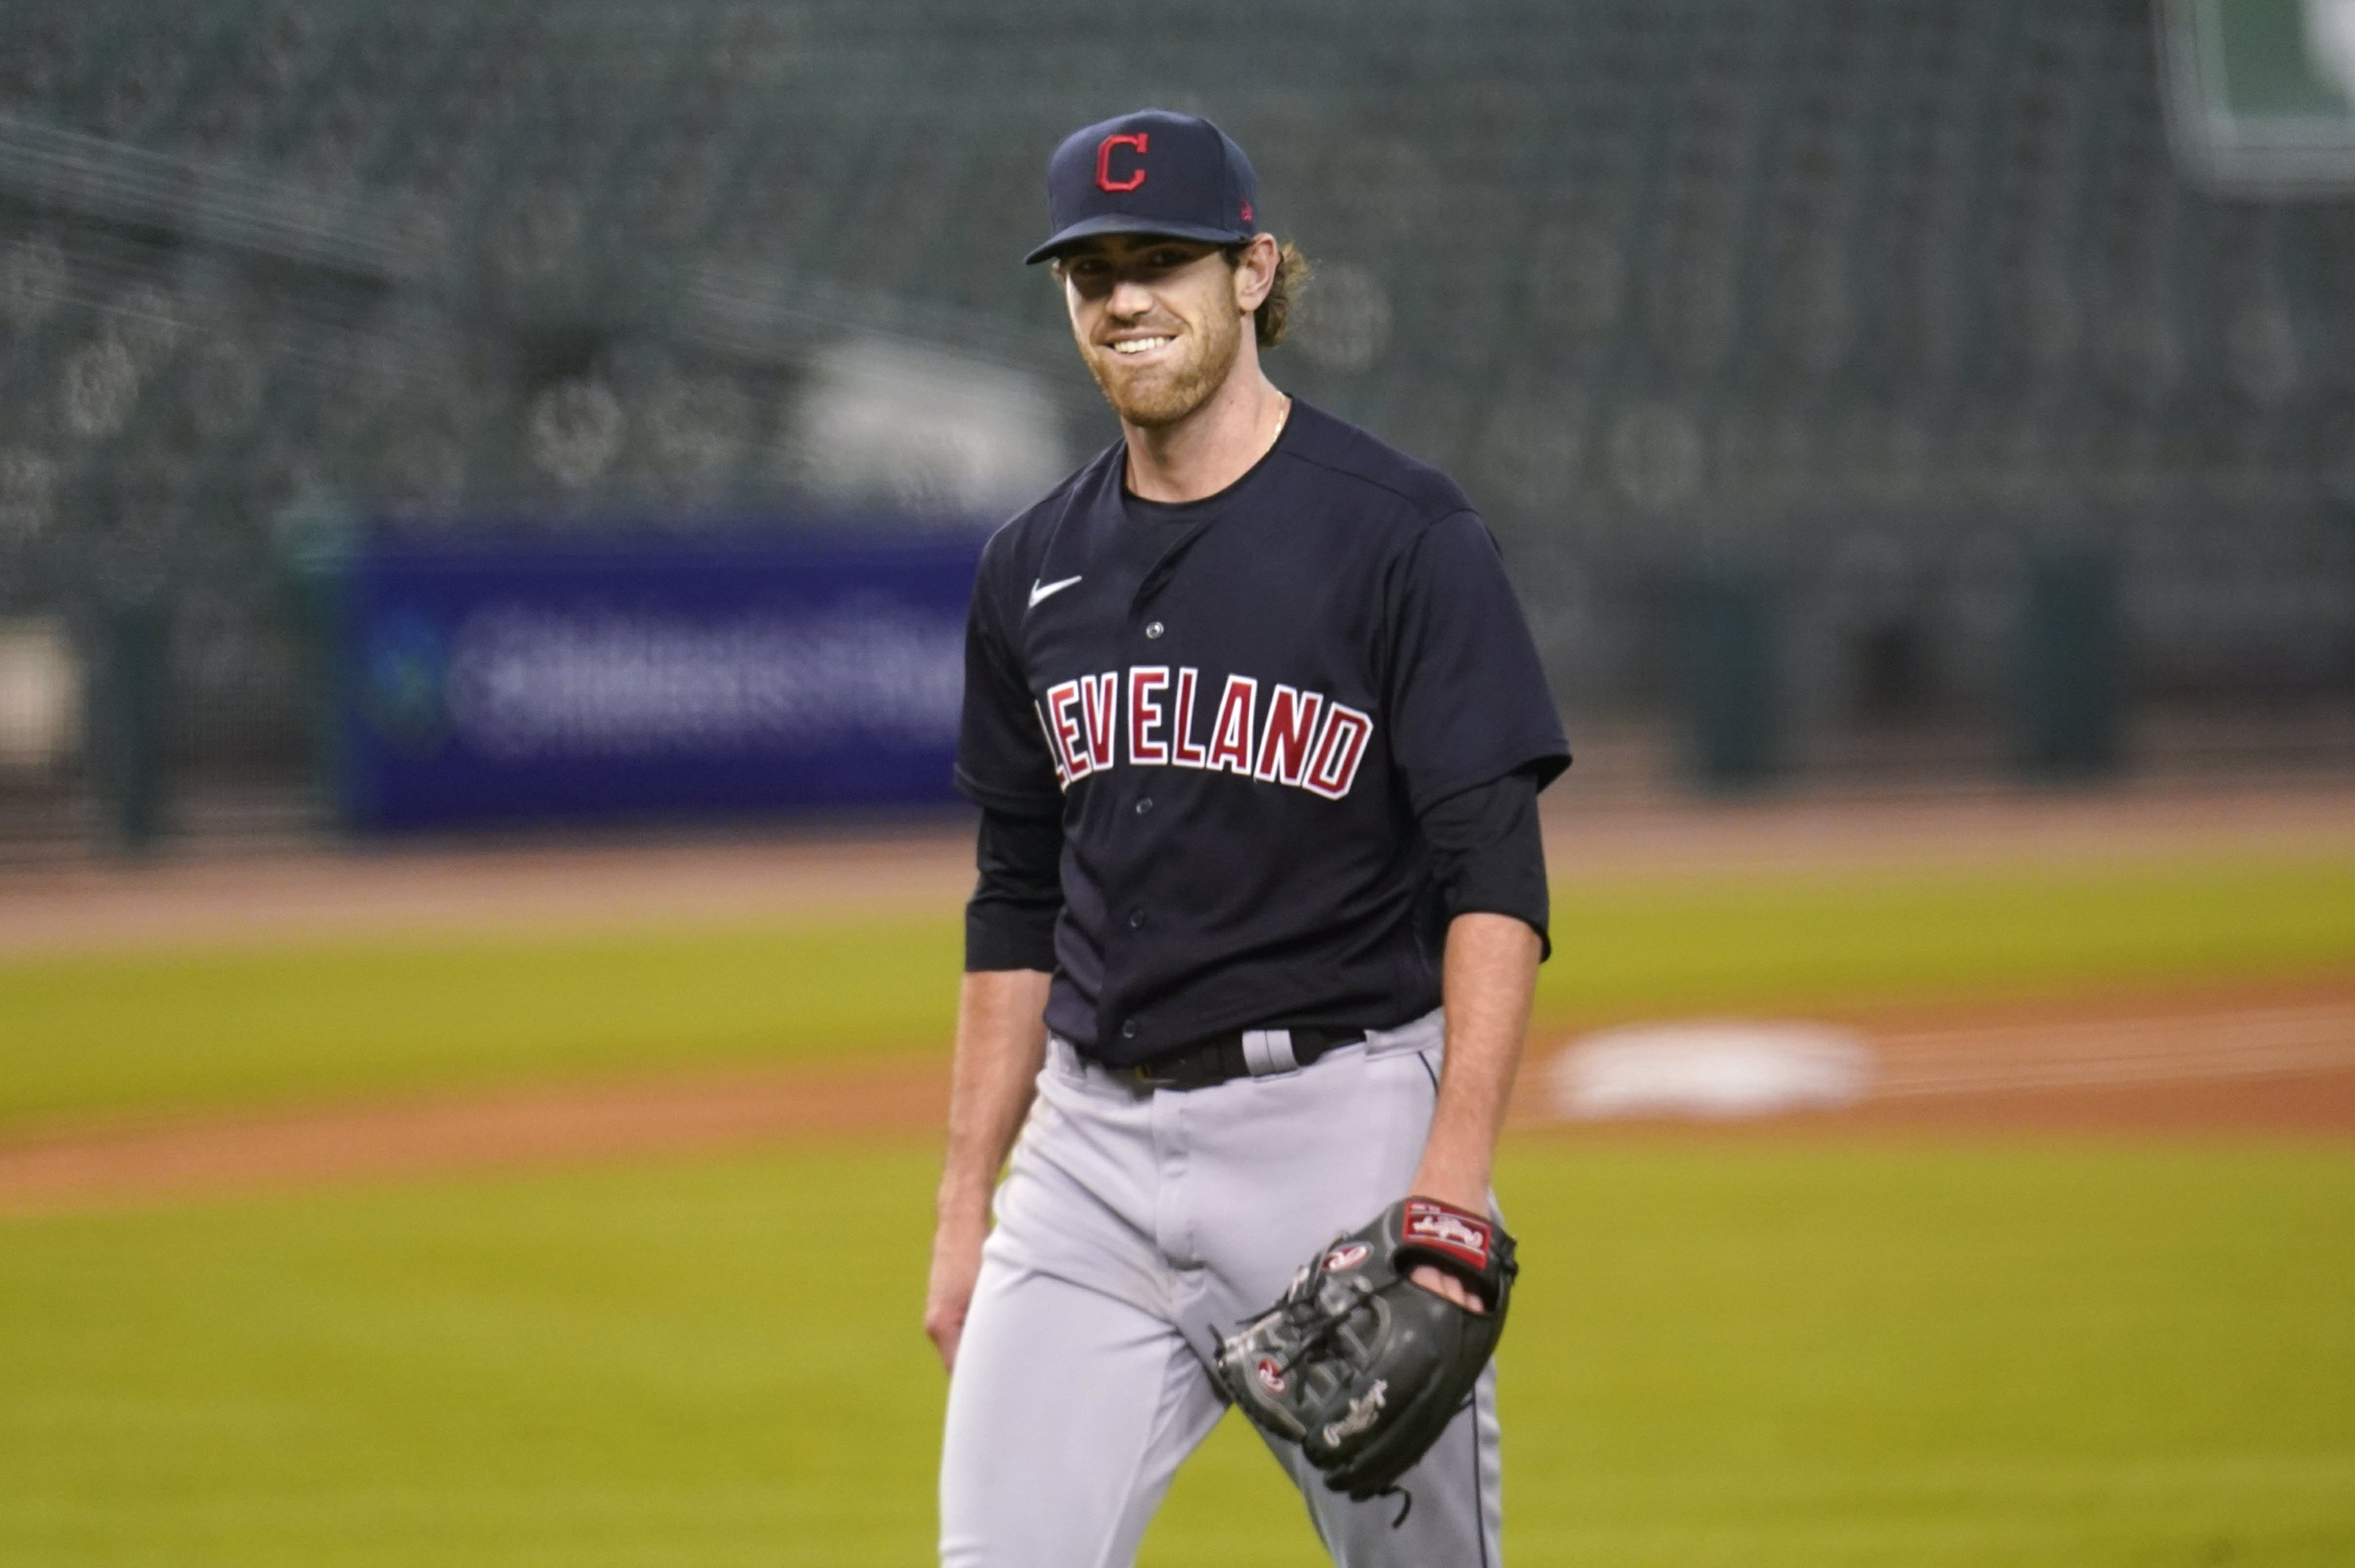 LEADING OFF: Indians' Bieber, Yankees' Cole take the mound